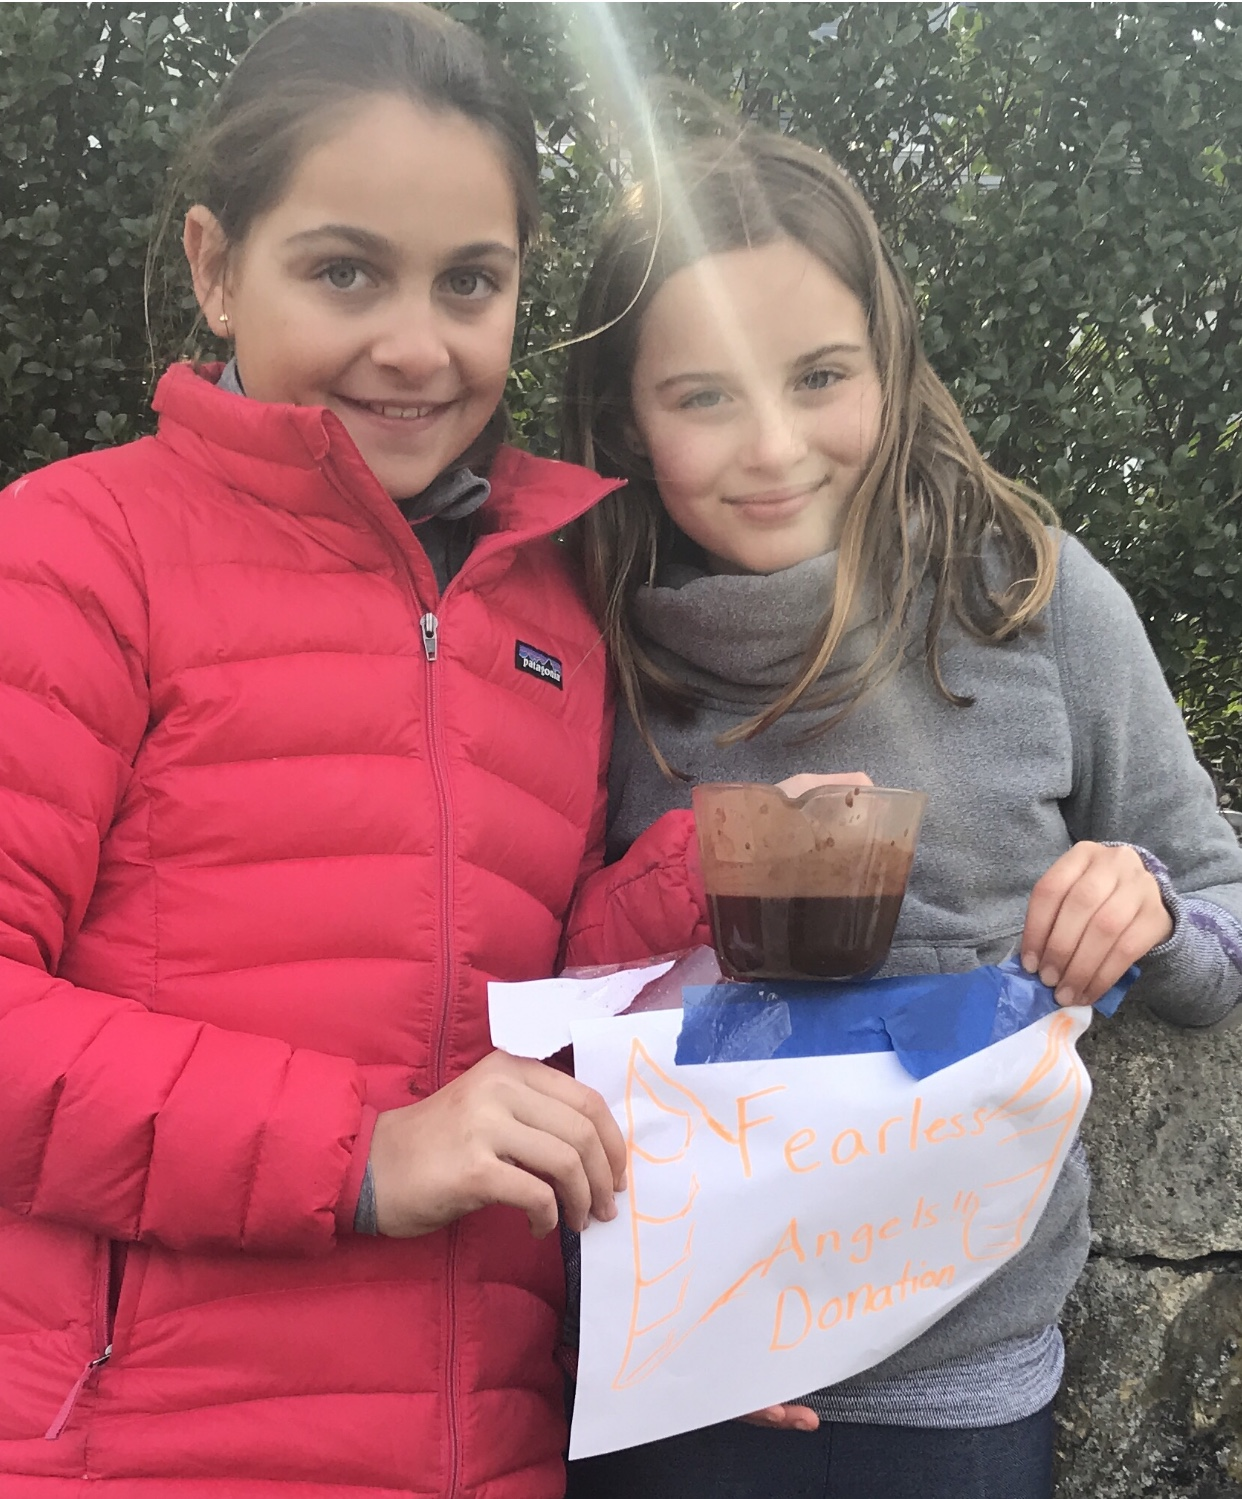 LULU PLOOG & ANSLEY BIEGER RAISE FUNDS FOR TFAP WITH COCOA STAND  APRIL 14TH, 2018    SEE ARTICLE